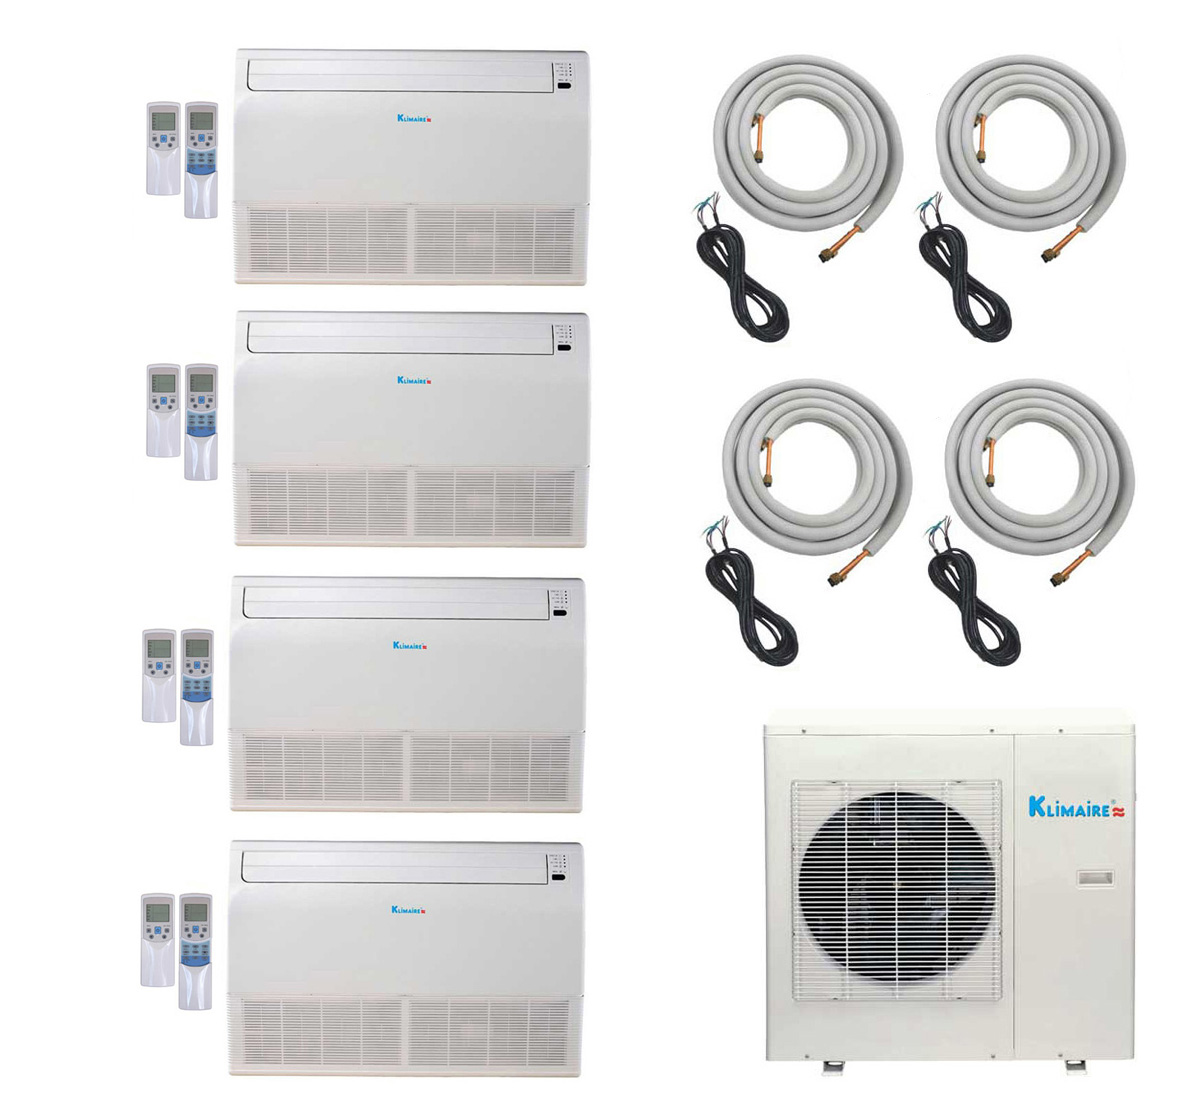 4-Zone Klimaire 16 SEER Ductless Multi-Zone Inverter Air Conditioner Heat Pump with 16 Ft Installation Kits HCKPI1430